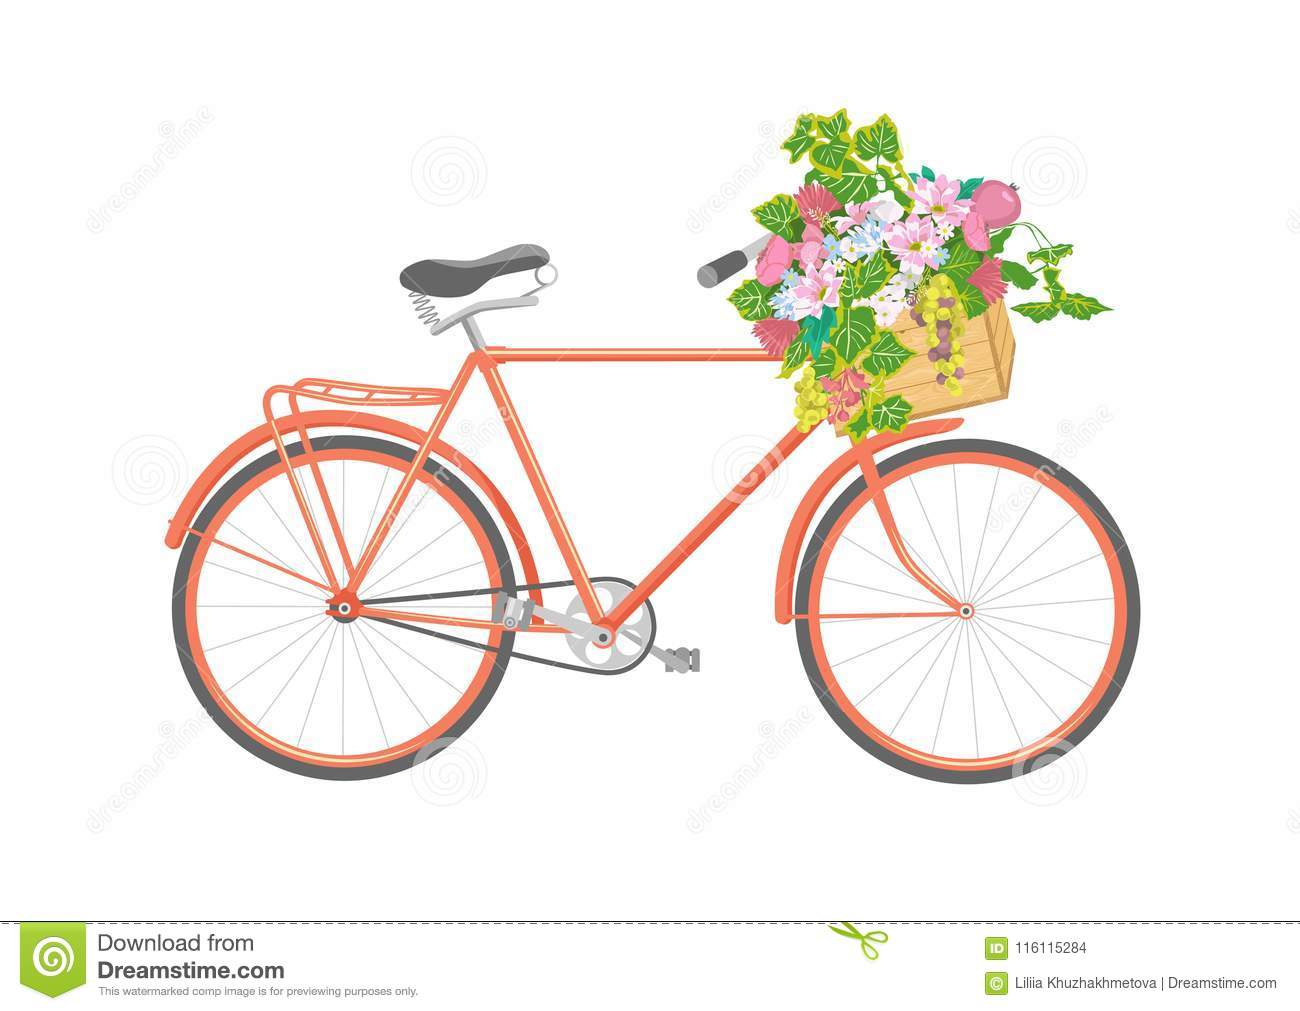 Bicycle with flowers in box. Illustration